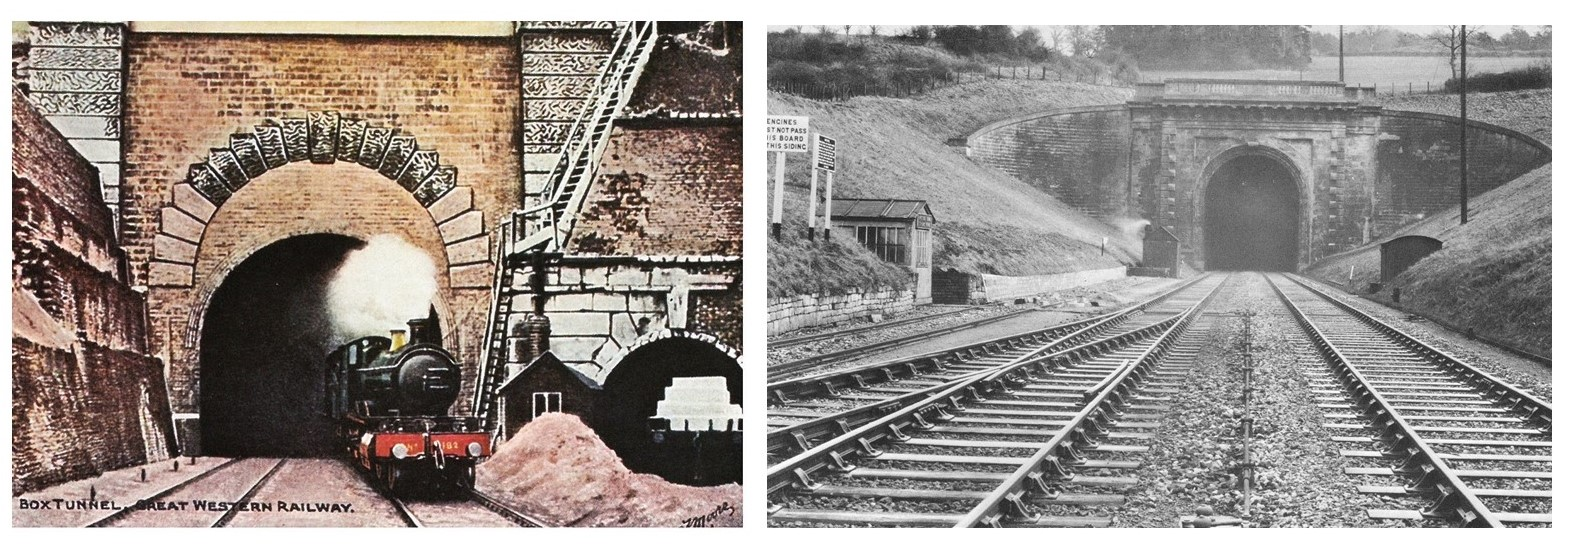 Two photographs showing box tunnel. On the left is a colour tinted postcard showing a steam train emerging from box tunnel with a smaller tunnel entrance visible to the right of it. The image on the right is a black and white photograph taken from the tracks looking into box tunnel showing the decorative stonework of the tunnel entrance